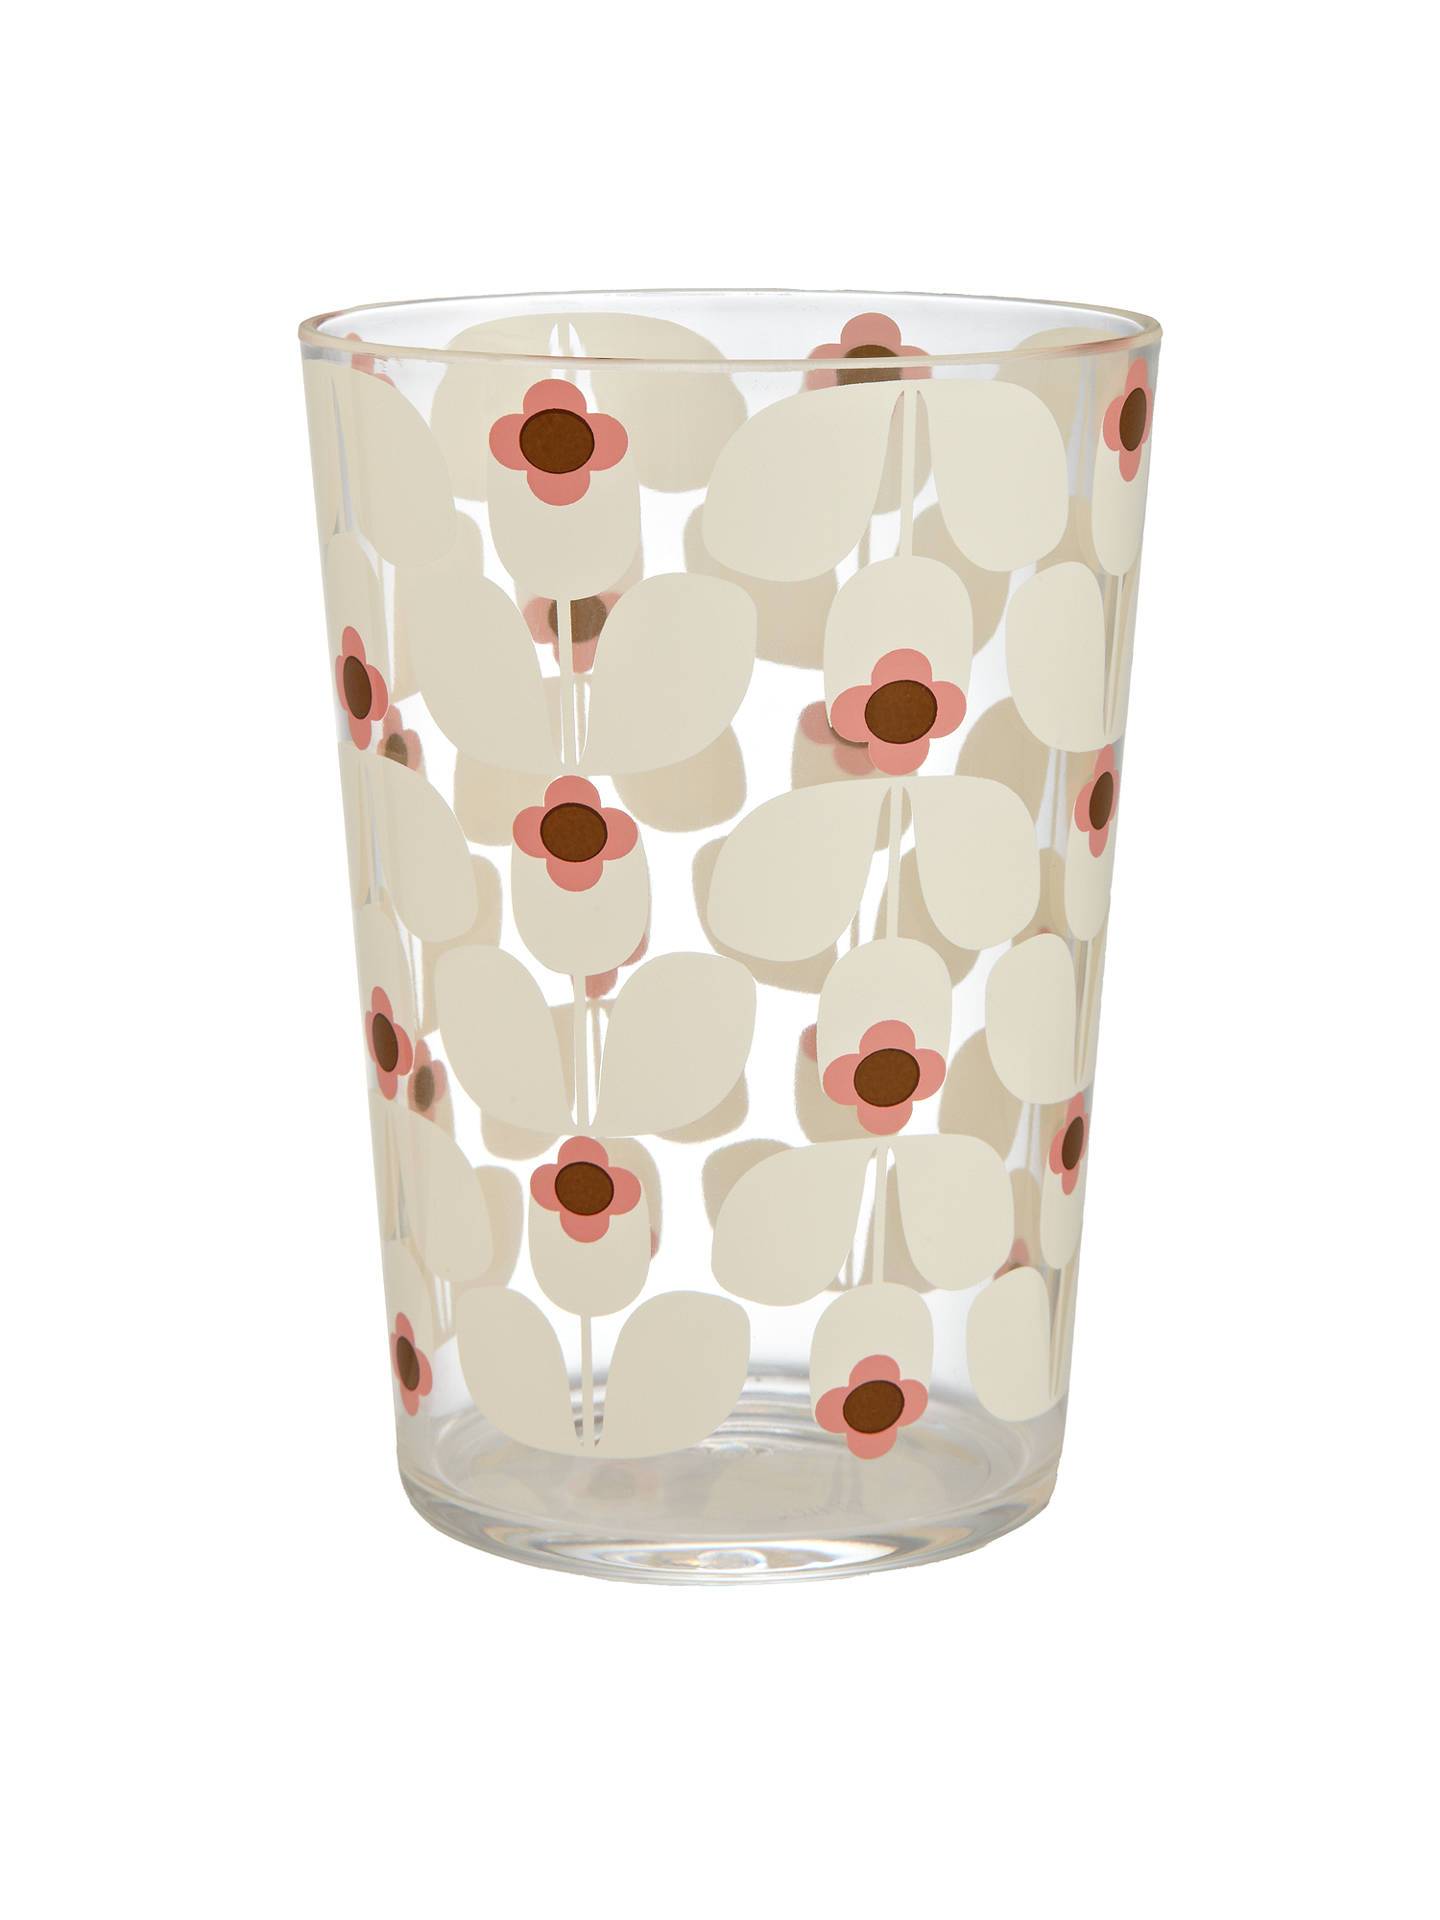 Buy Orla Kiely Wallflower Acrylic Picnic Tumbler, Candy Floss Online at johnlewis.com